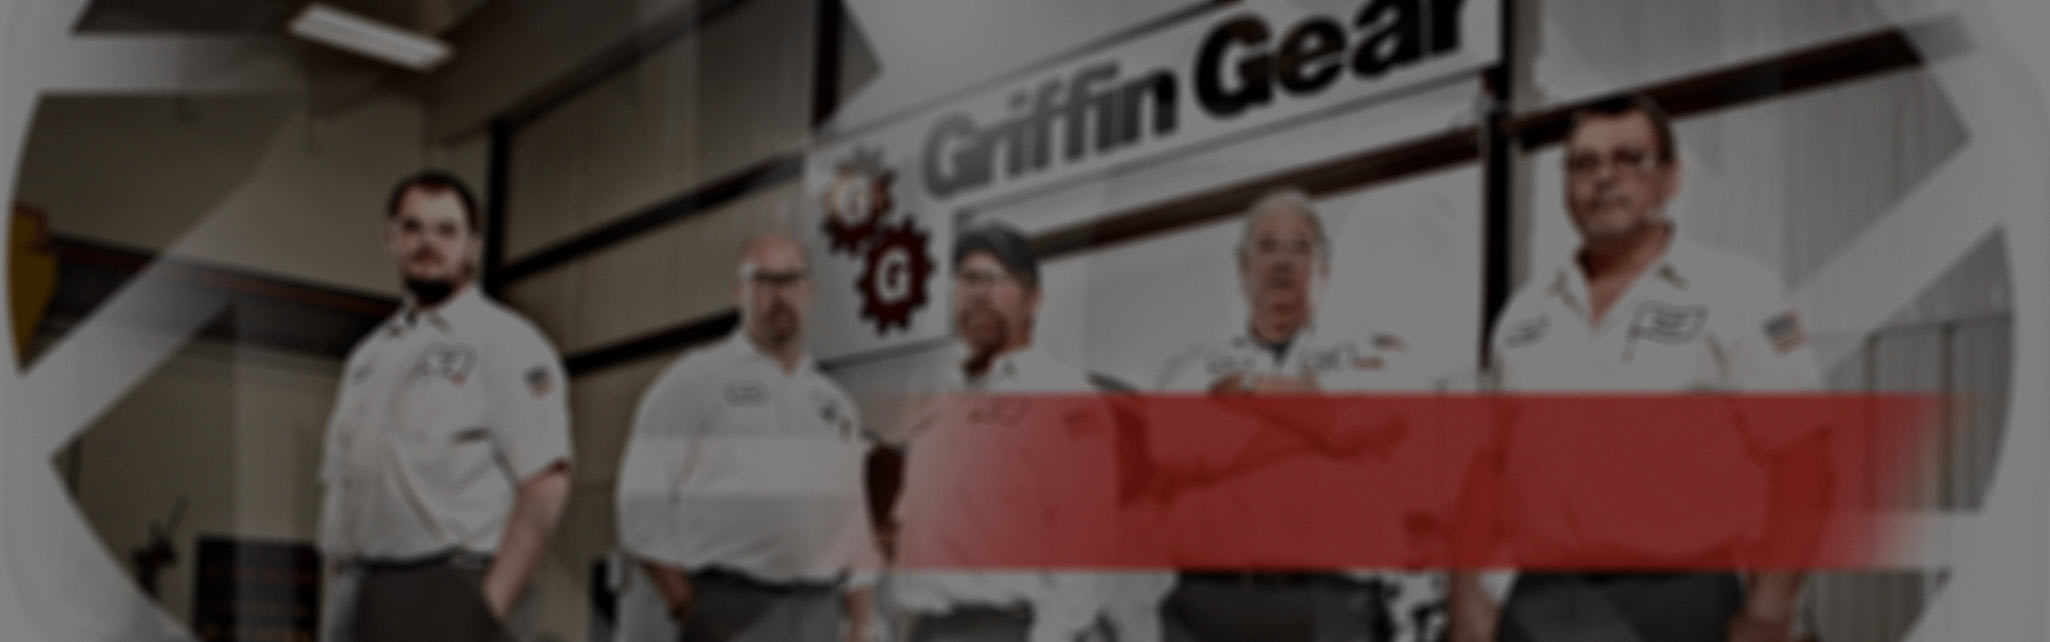 Griffin Gear Offers A Complete Range of Gearing Solutions for the Power Transmission Industry